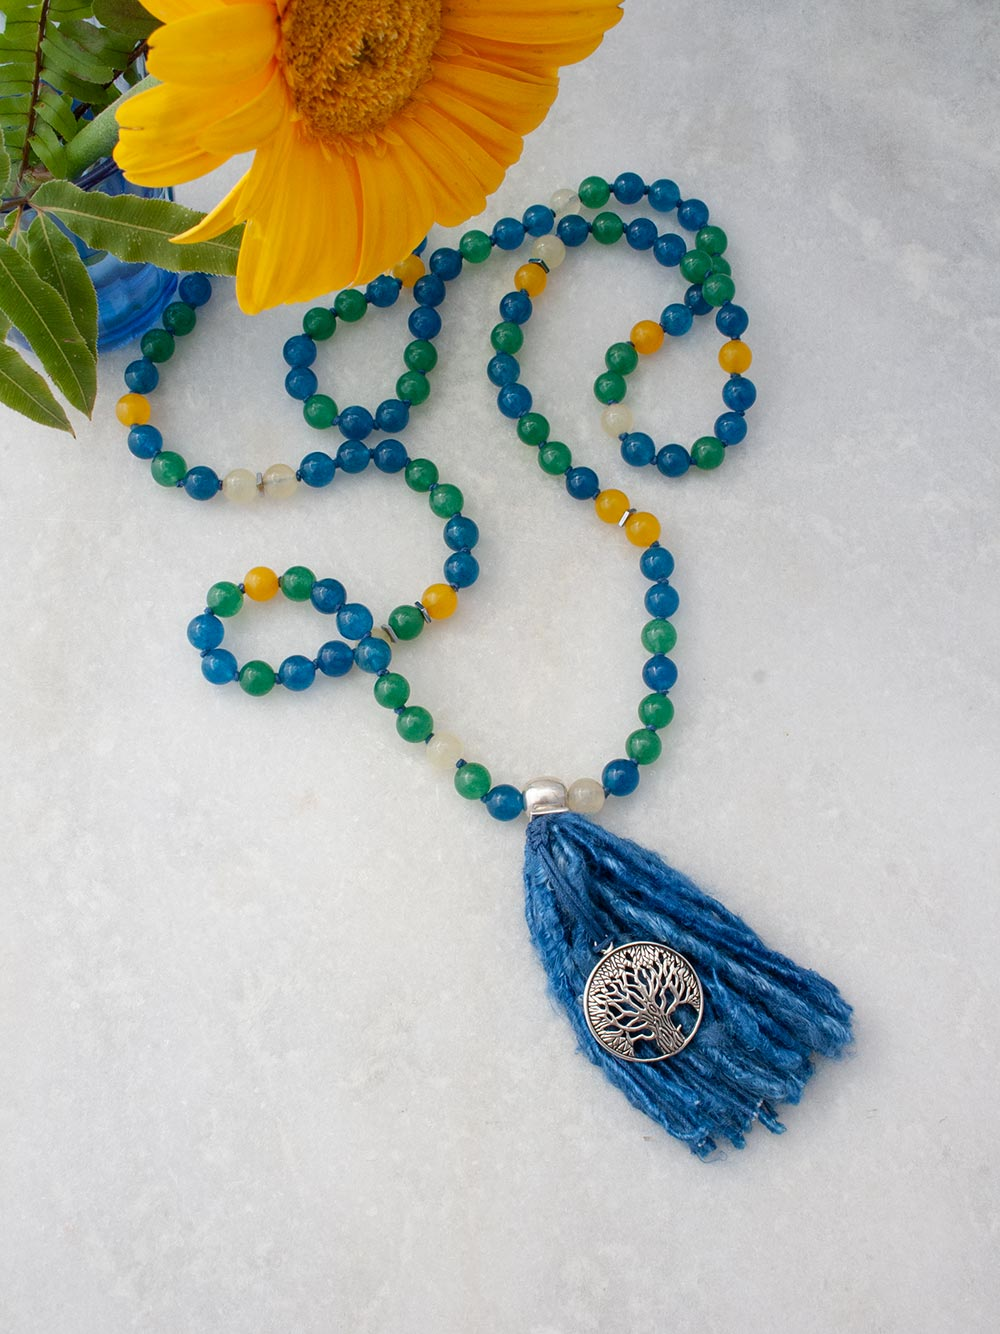 Serendipity Mala in peacock blue/sylvan green/citrine and aurora gloria yellow aventurine, with 925 silver tree of life. Full view.